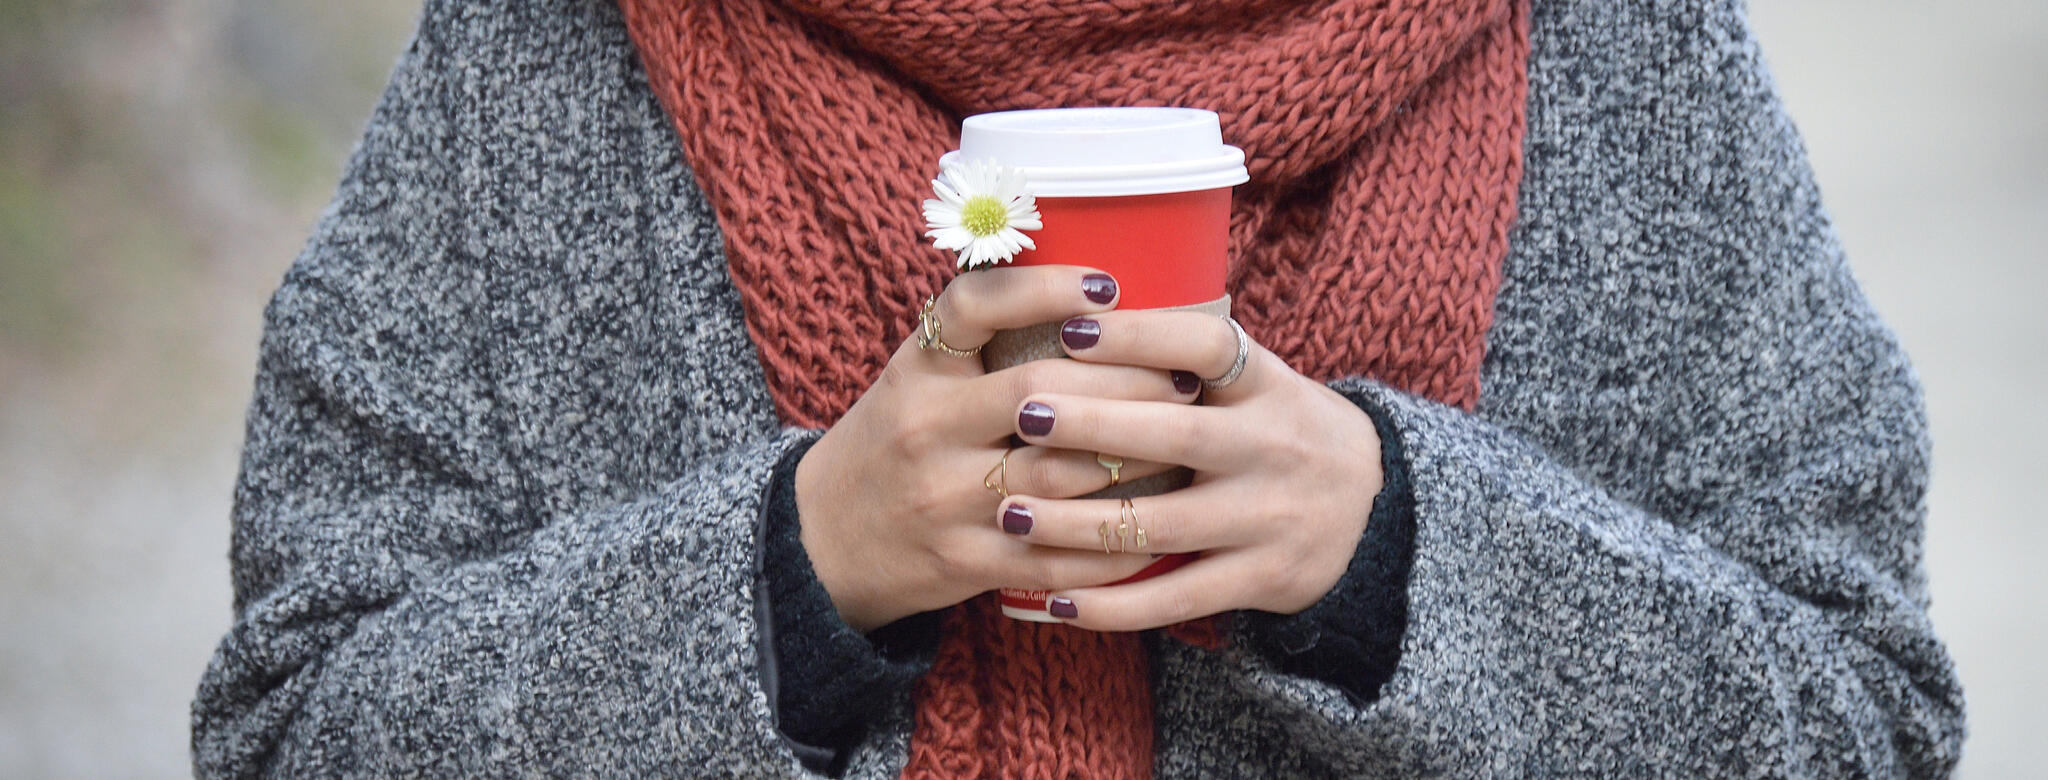 woman in scarf holding red and white coffee cup with manicured hands